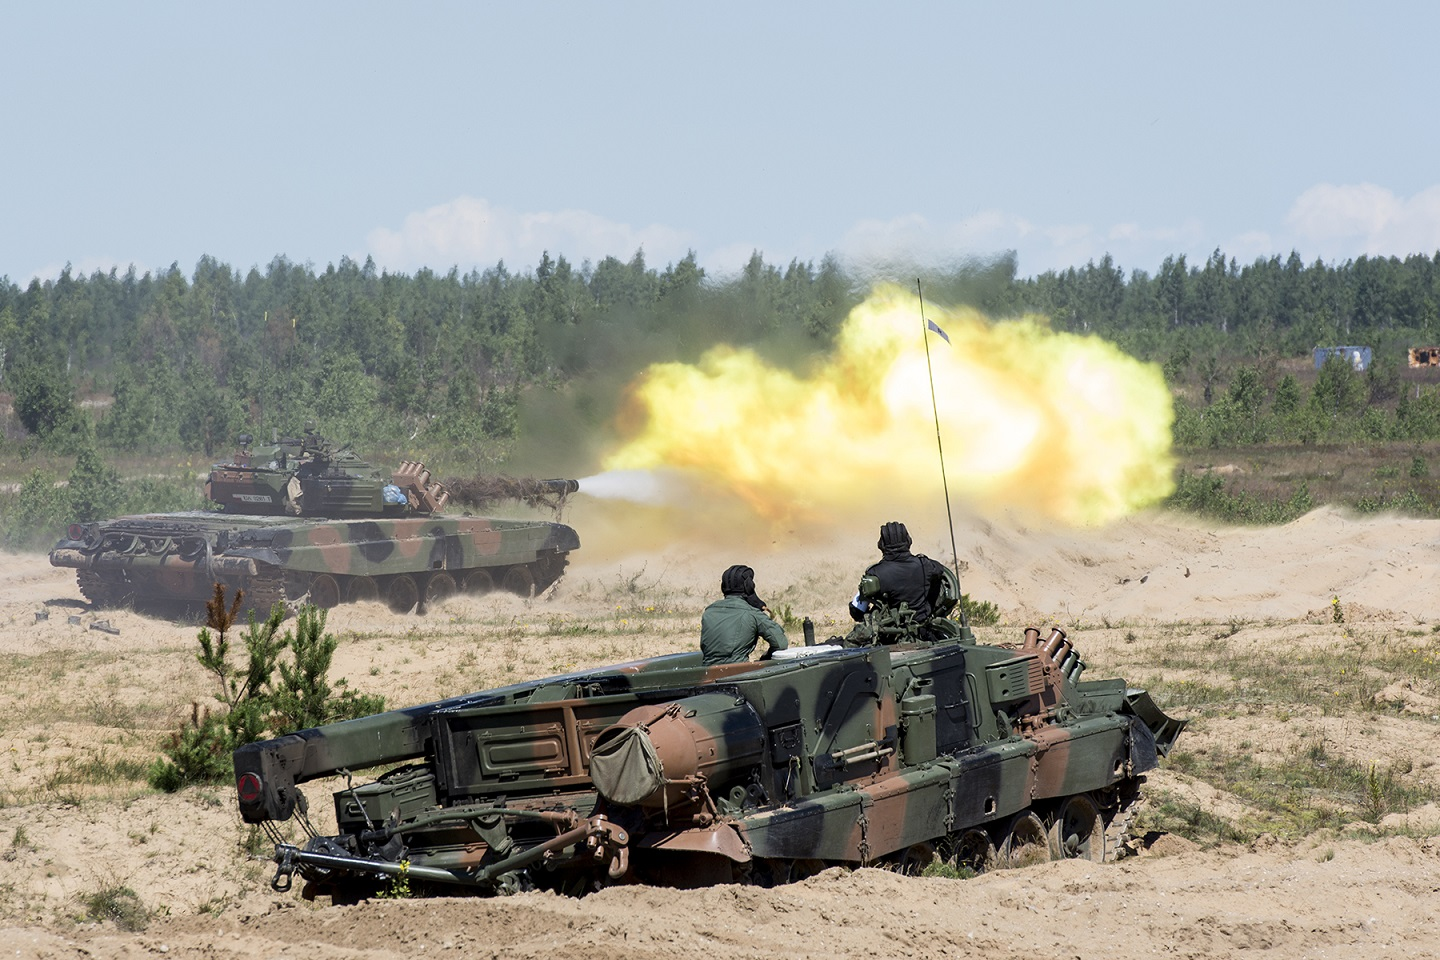 A Polish T-91 tank, part of the enhance Forward Presence Battlegroup Latvia, fires at its target in the training range of   Camp Ādaži in Latvia, on July 14, 2017.